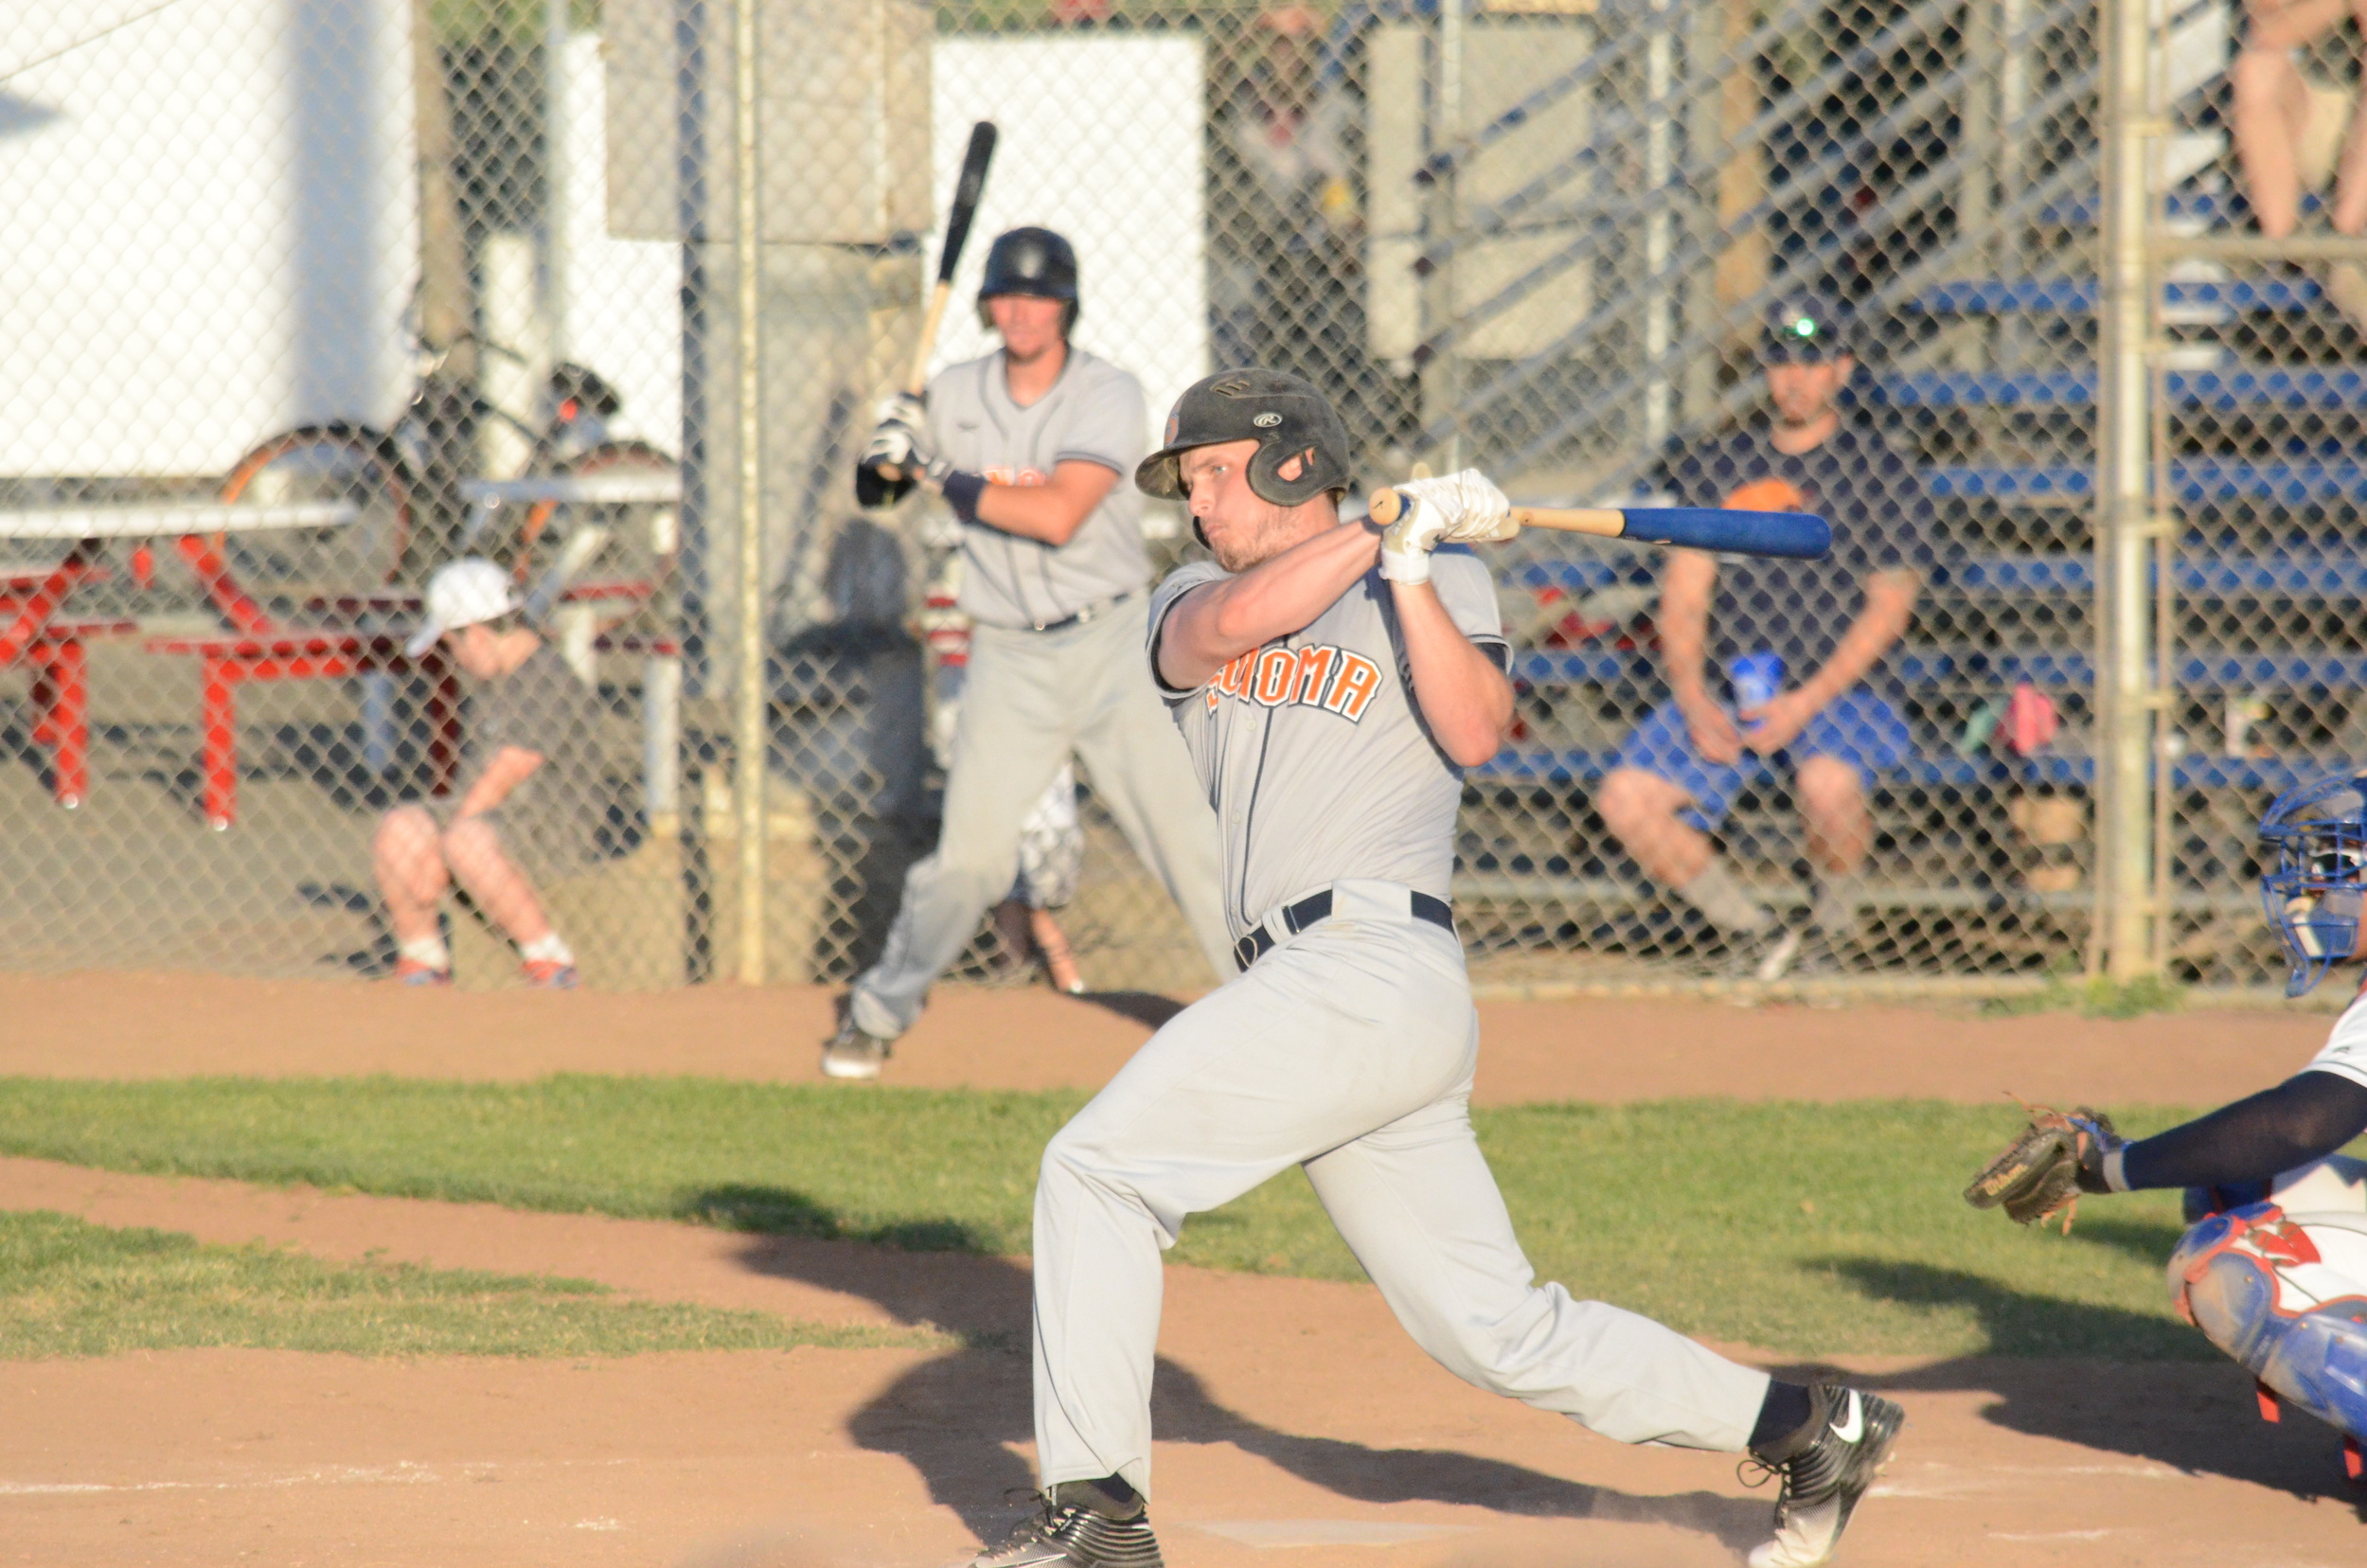 Ethan Szabo had two hits on Tuesday night.   James Toy III/Sonoma Stompers